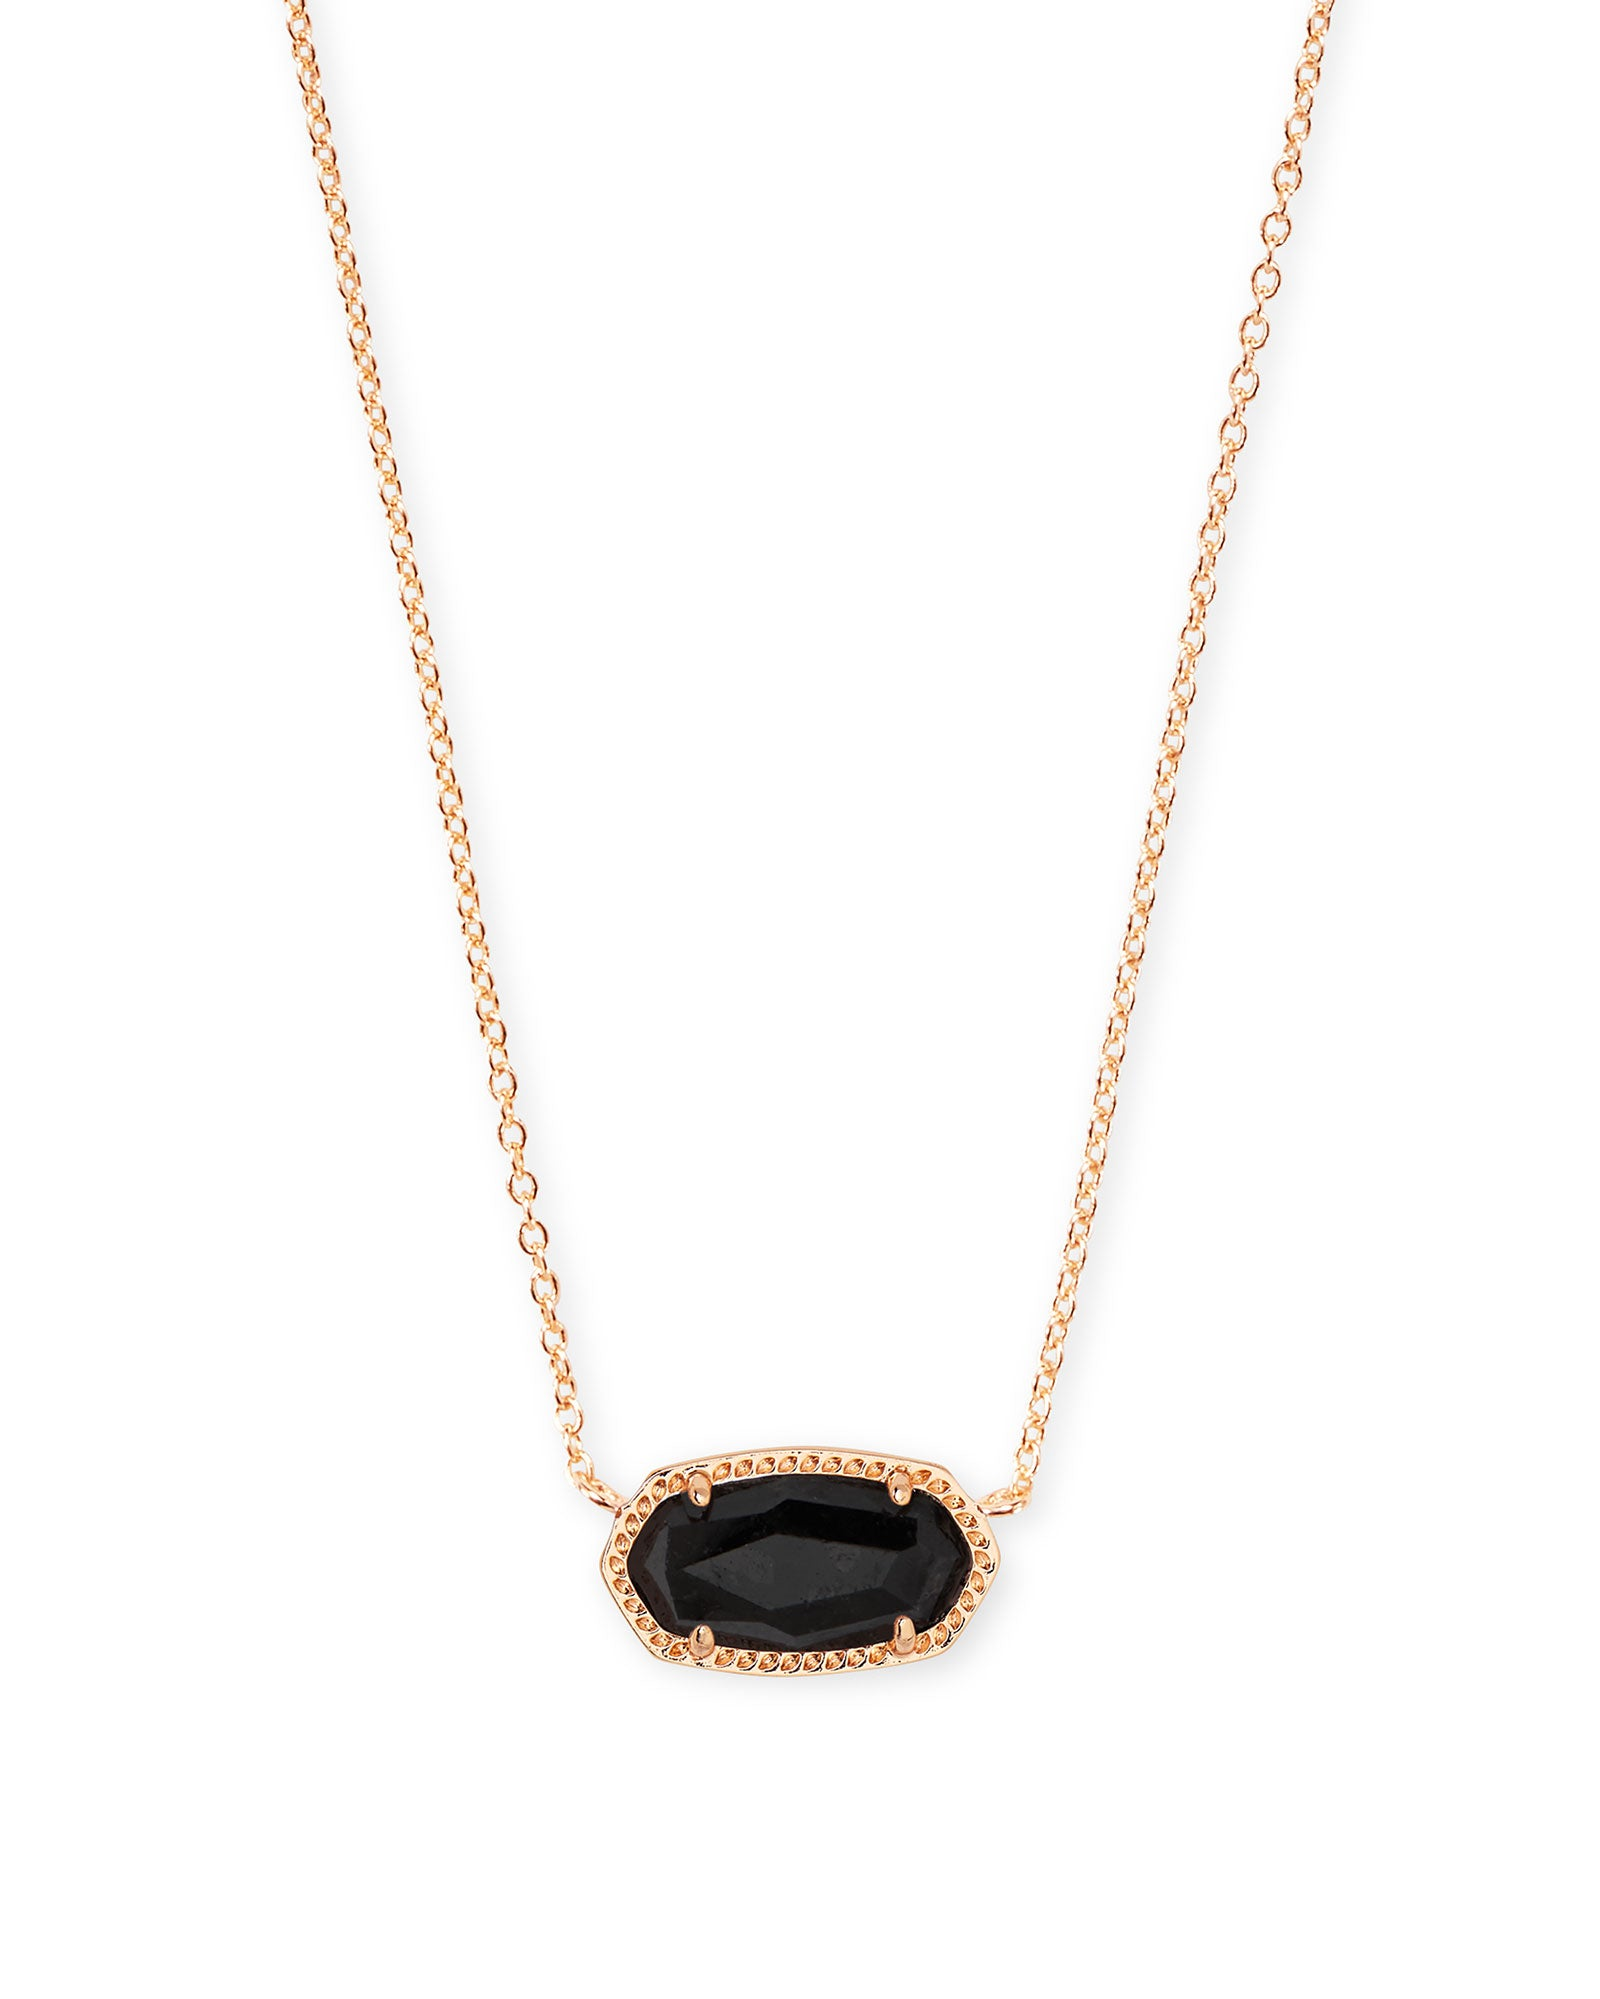 Kendra Scott Elisa Rose Gold Pendant Necklace In Black Granite